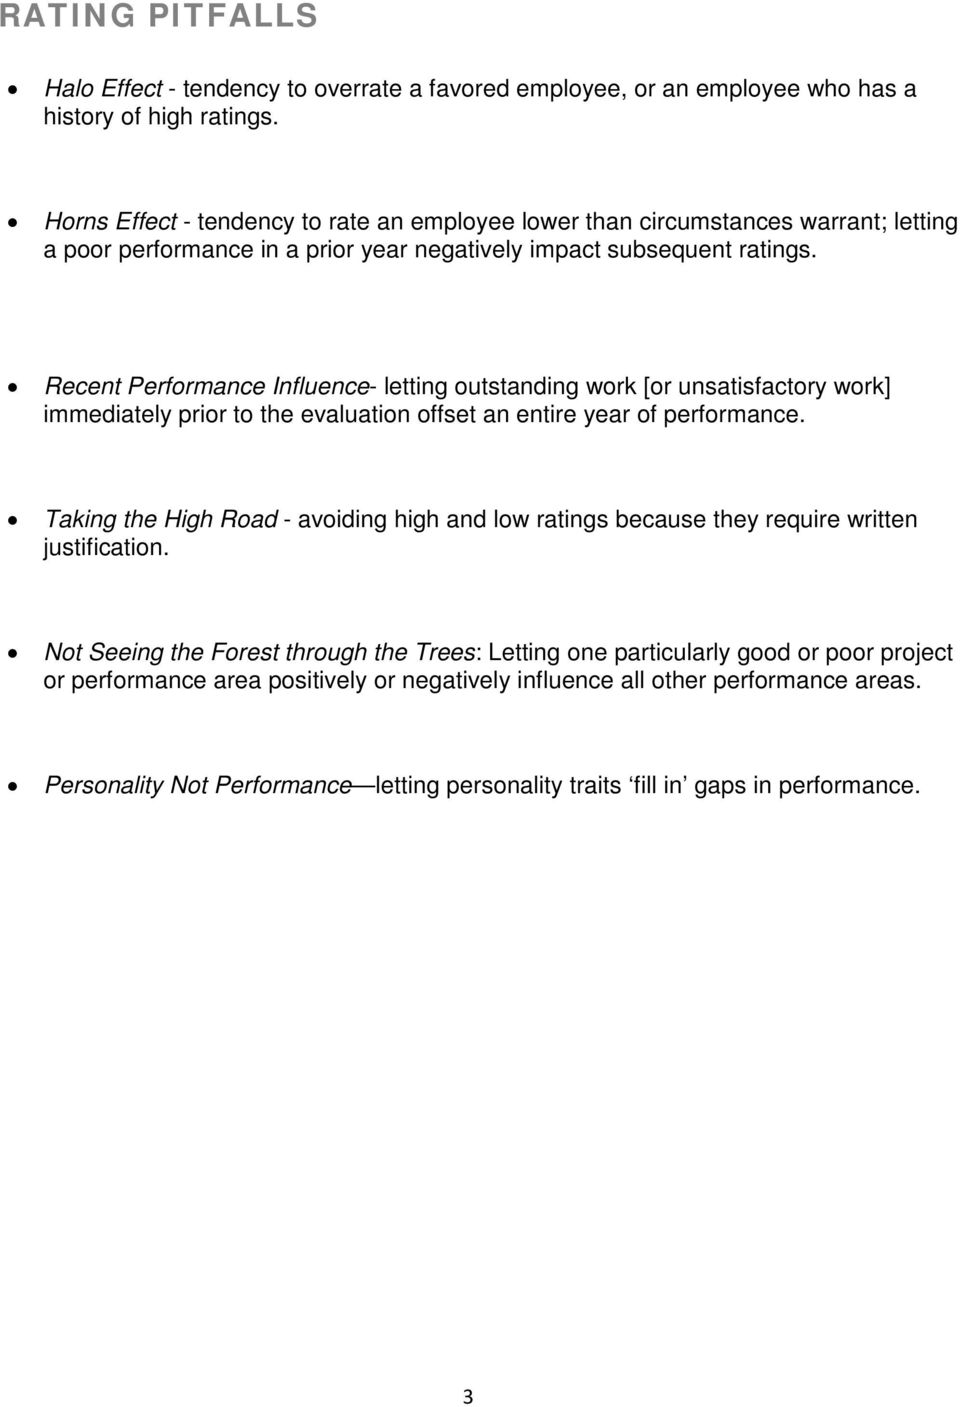 Recent Performance Influence- letting outstanding work [or unsatisfactory work] immediately prior to the evaluation offset an entire year of performance.